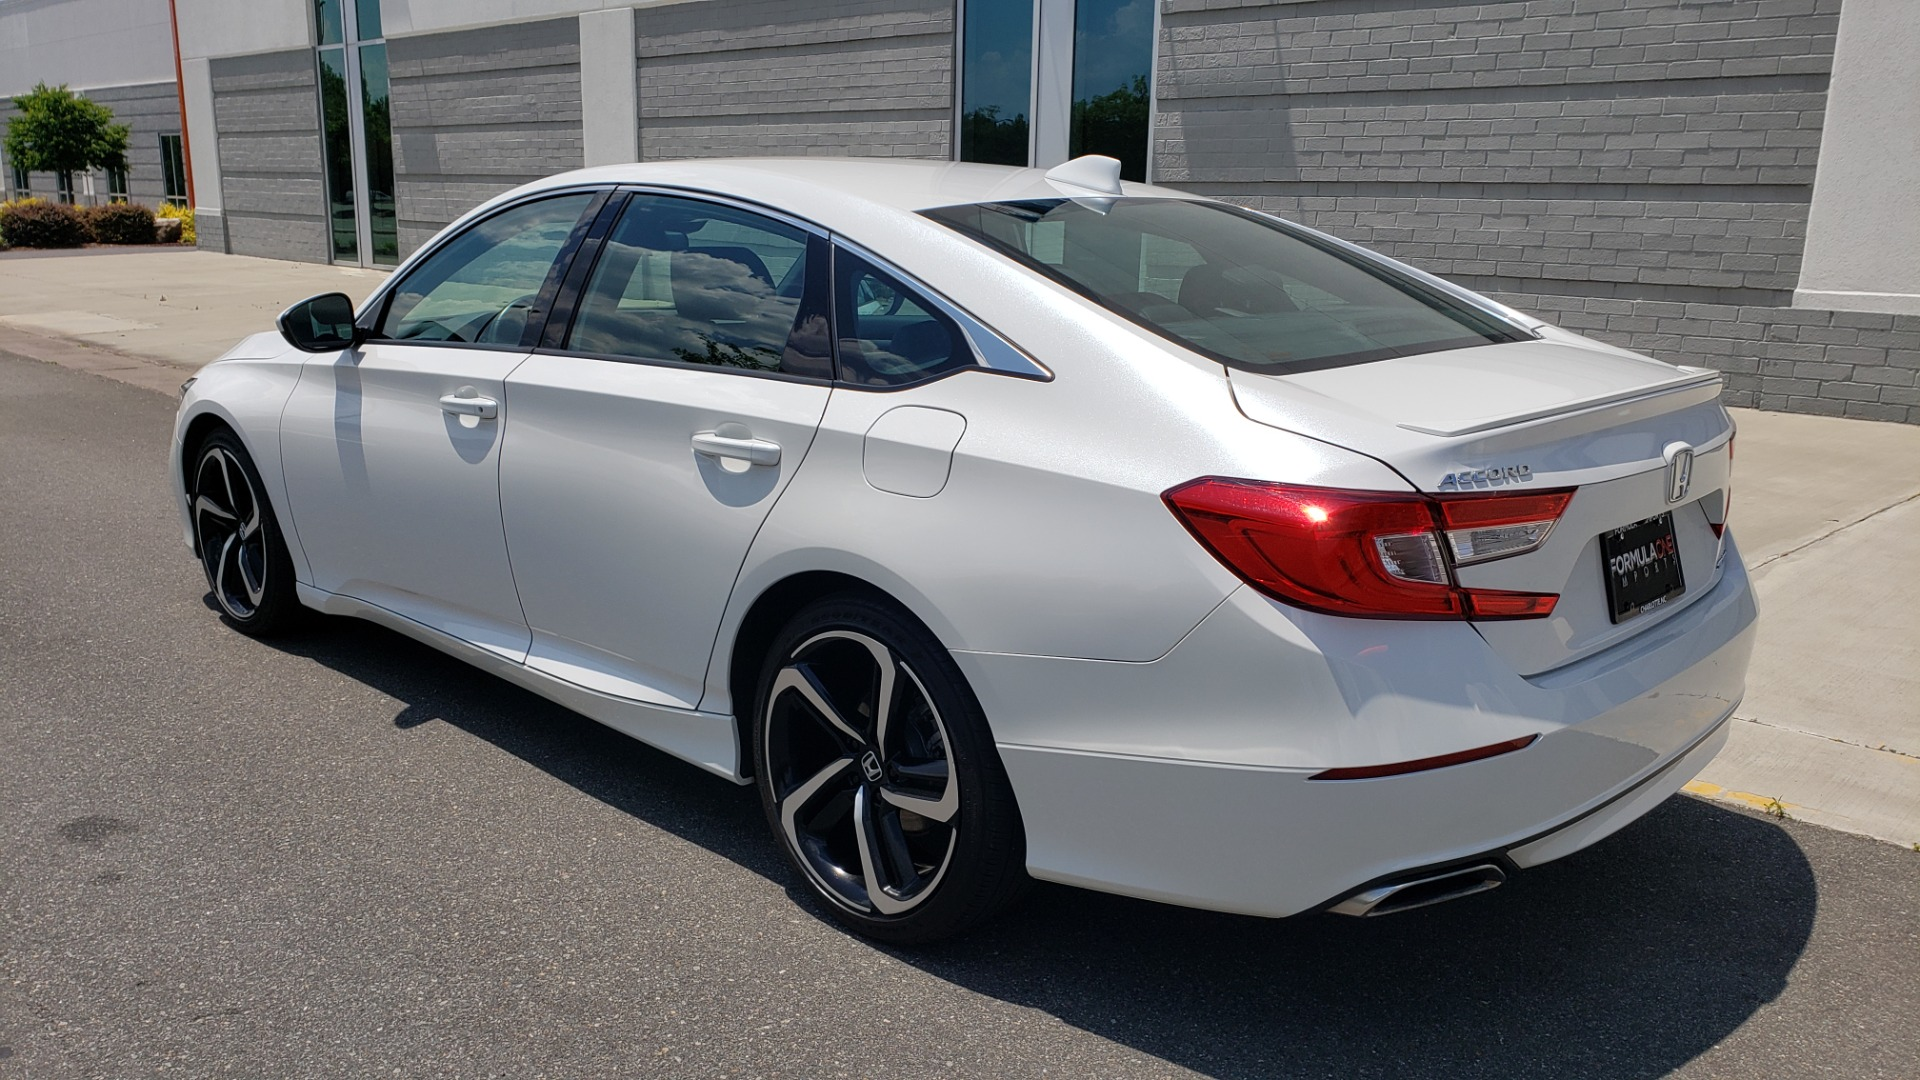 Used 2018 Honda ACCORD SEDAN SPORT 1.5T / CVT TRANS / FWD / 19IN WHEELS for sale $20,995 at Formula Imports in Charlotte NC 28227 6